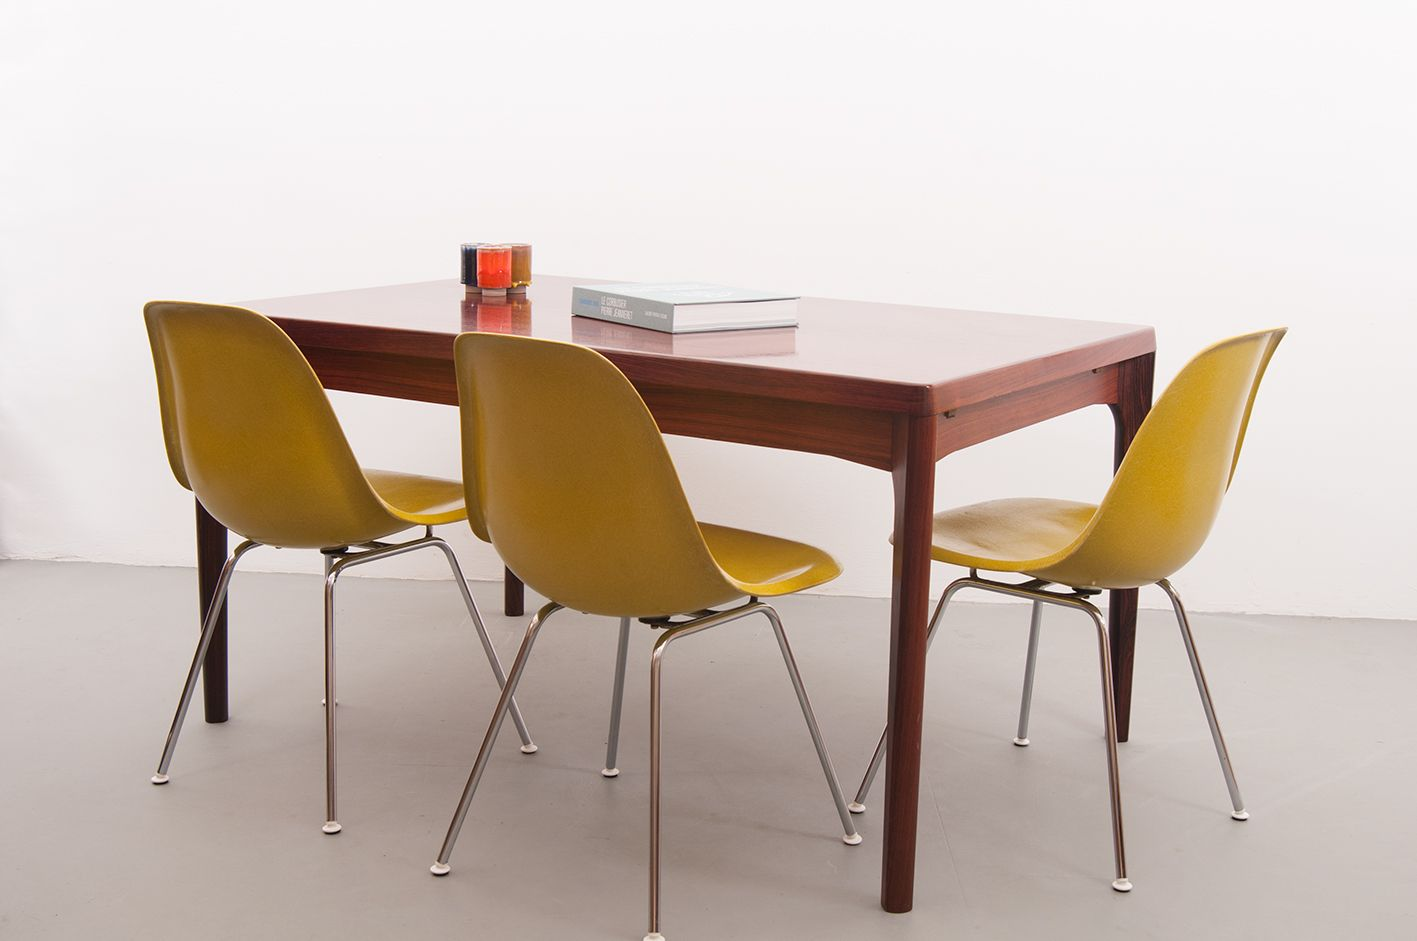 Extensible dining table by henning kj rnulf for vejle for Table extensible 2 a 8 personnes